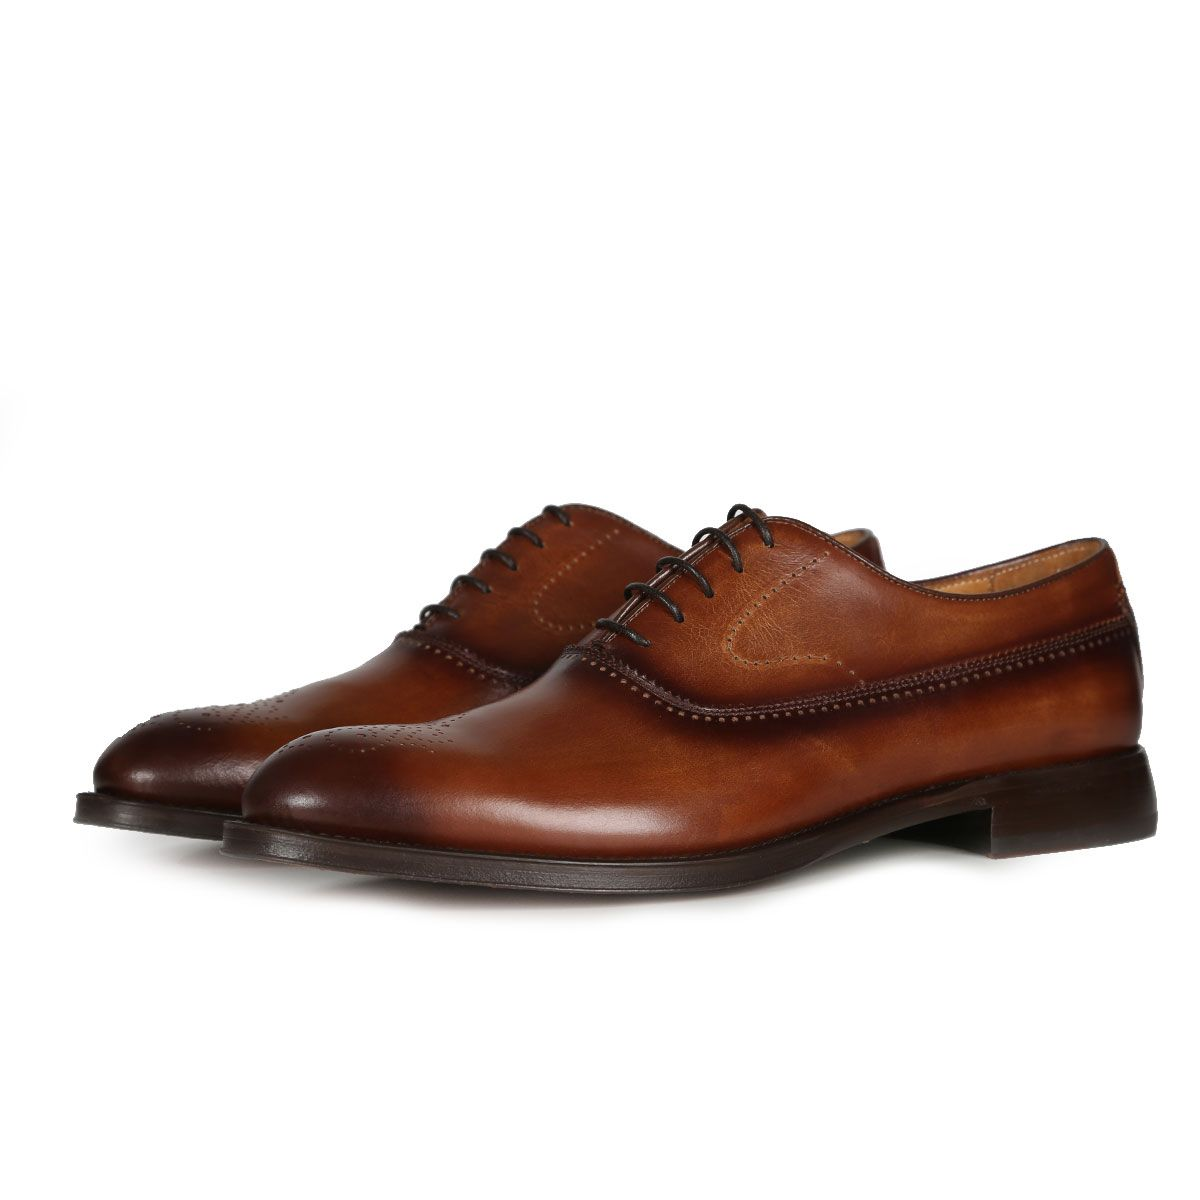 Oliver Sweeney Oristano Tan - Antiqued Leather Oxford Brogue